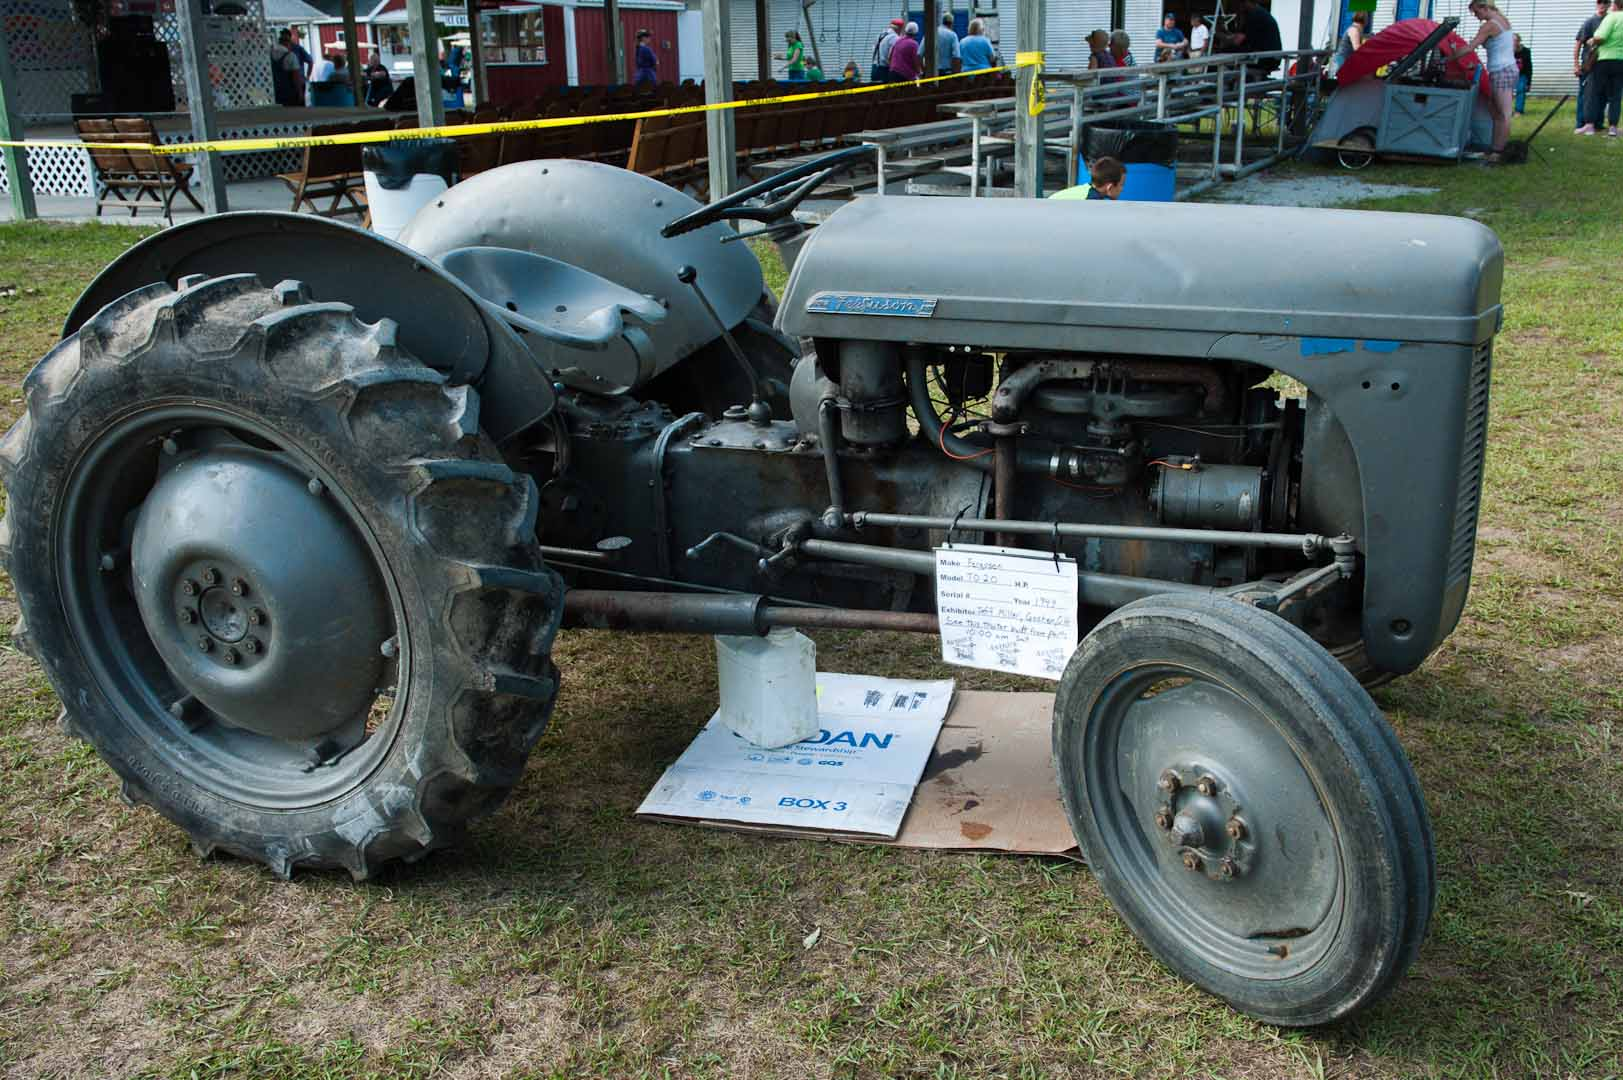 1949 TO-20 owned by Jeff Miller of Goshen, IA. This is the tractor that gets rebuilt once a day at shows. It has been rebuilt 32 times since the Monroe, MI show in 2010.